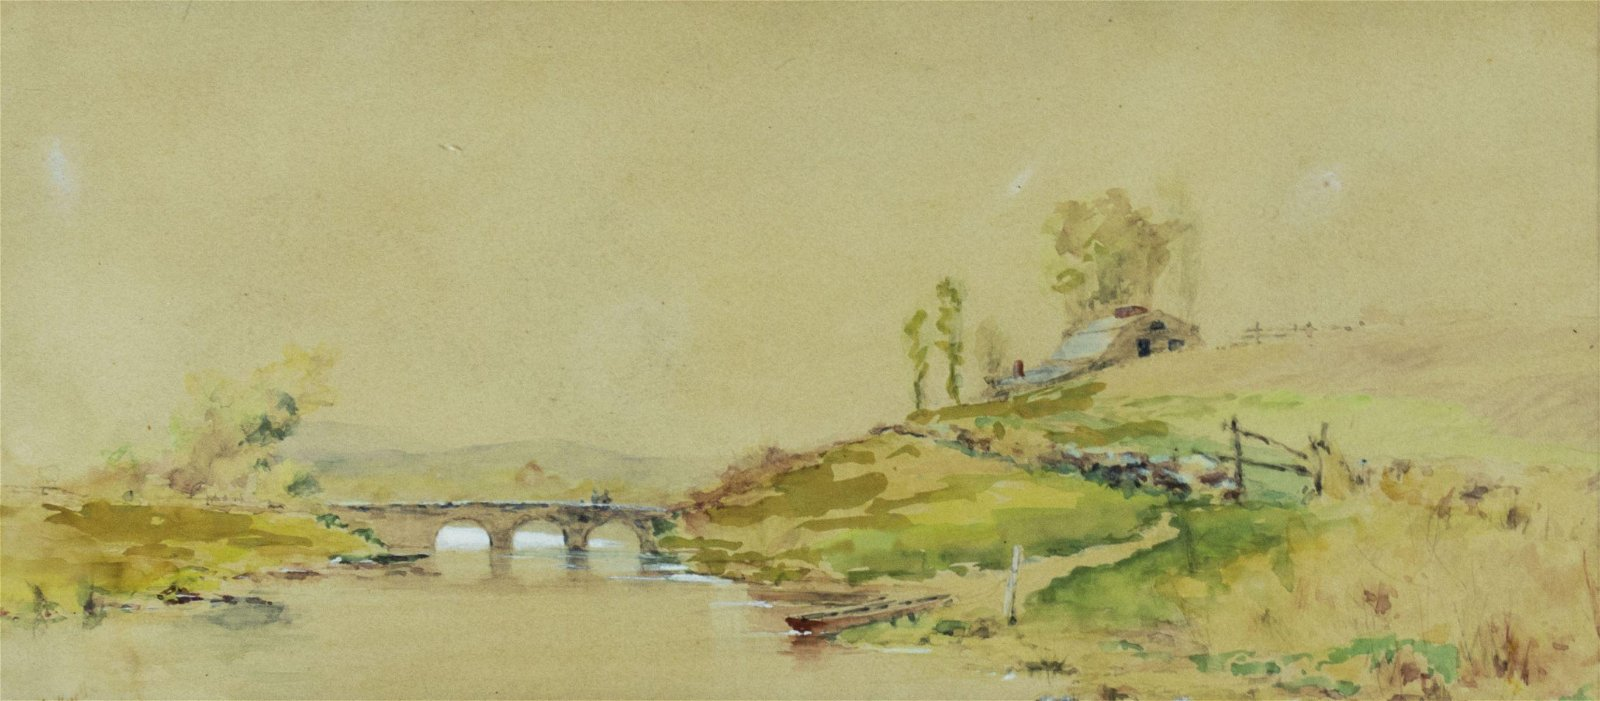 William Bicknell (MA,1860-1947) watercolor painting